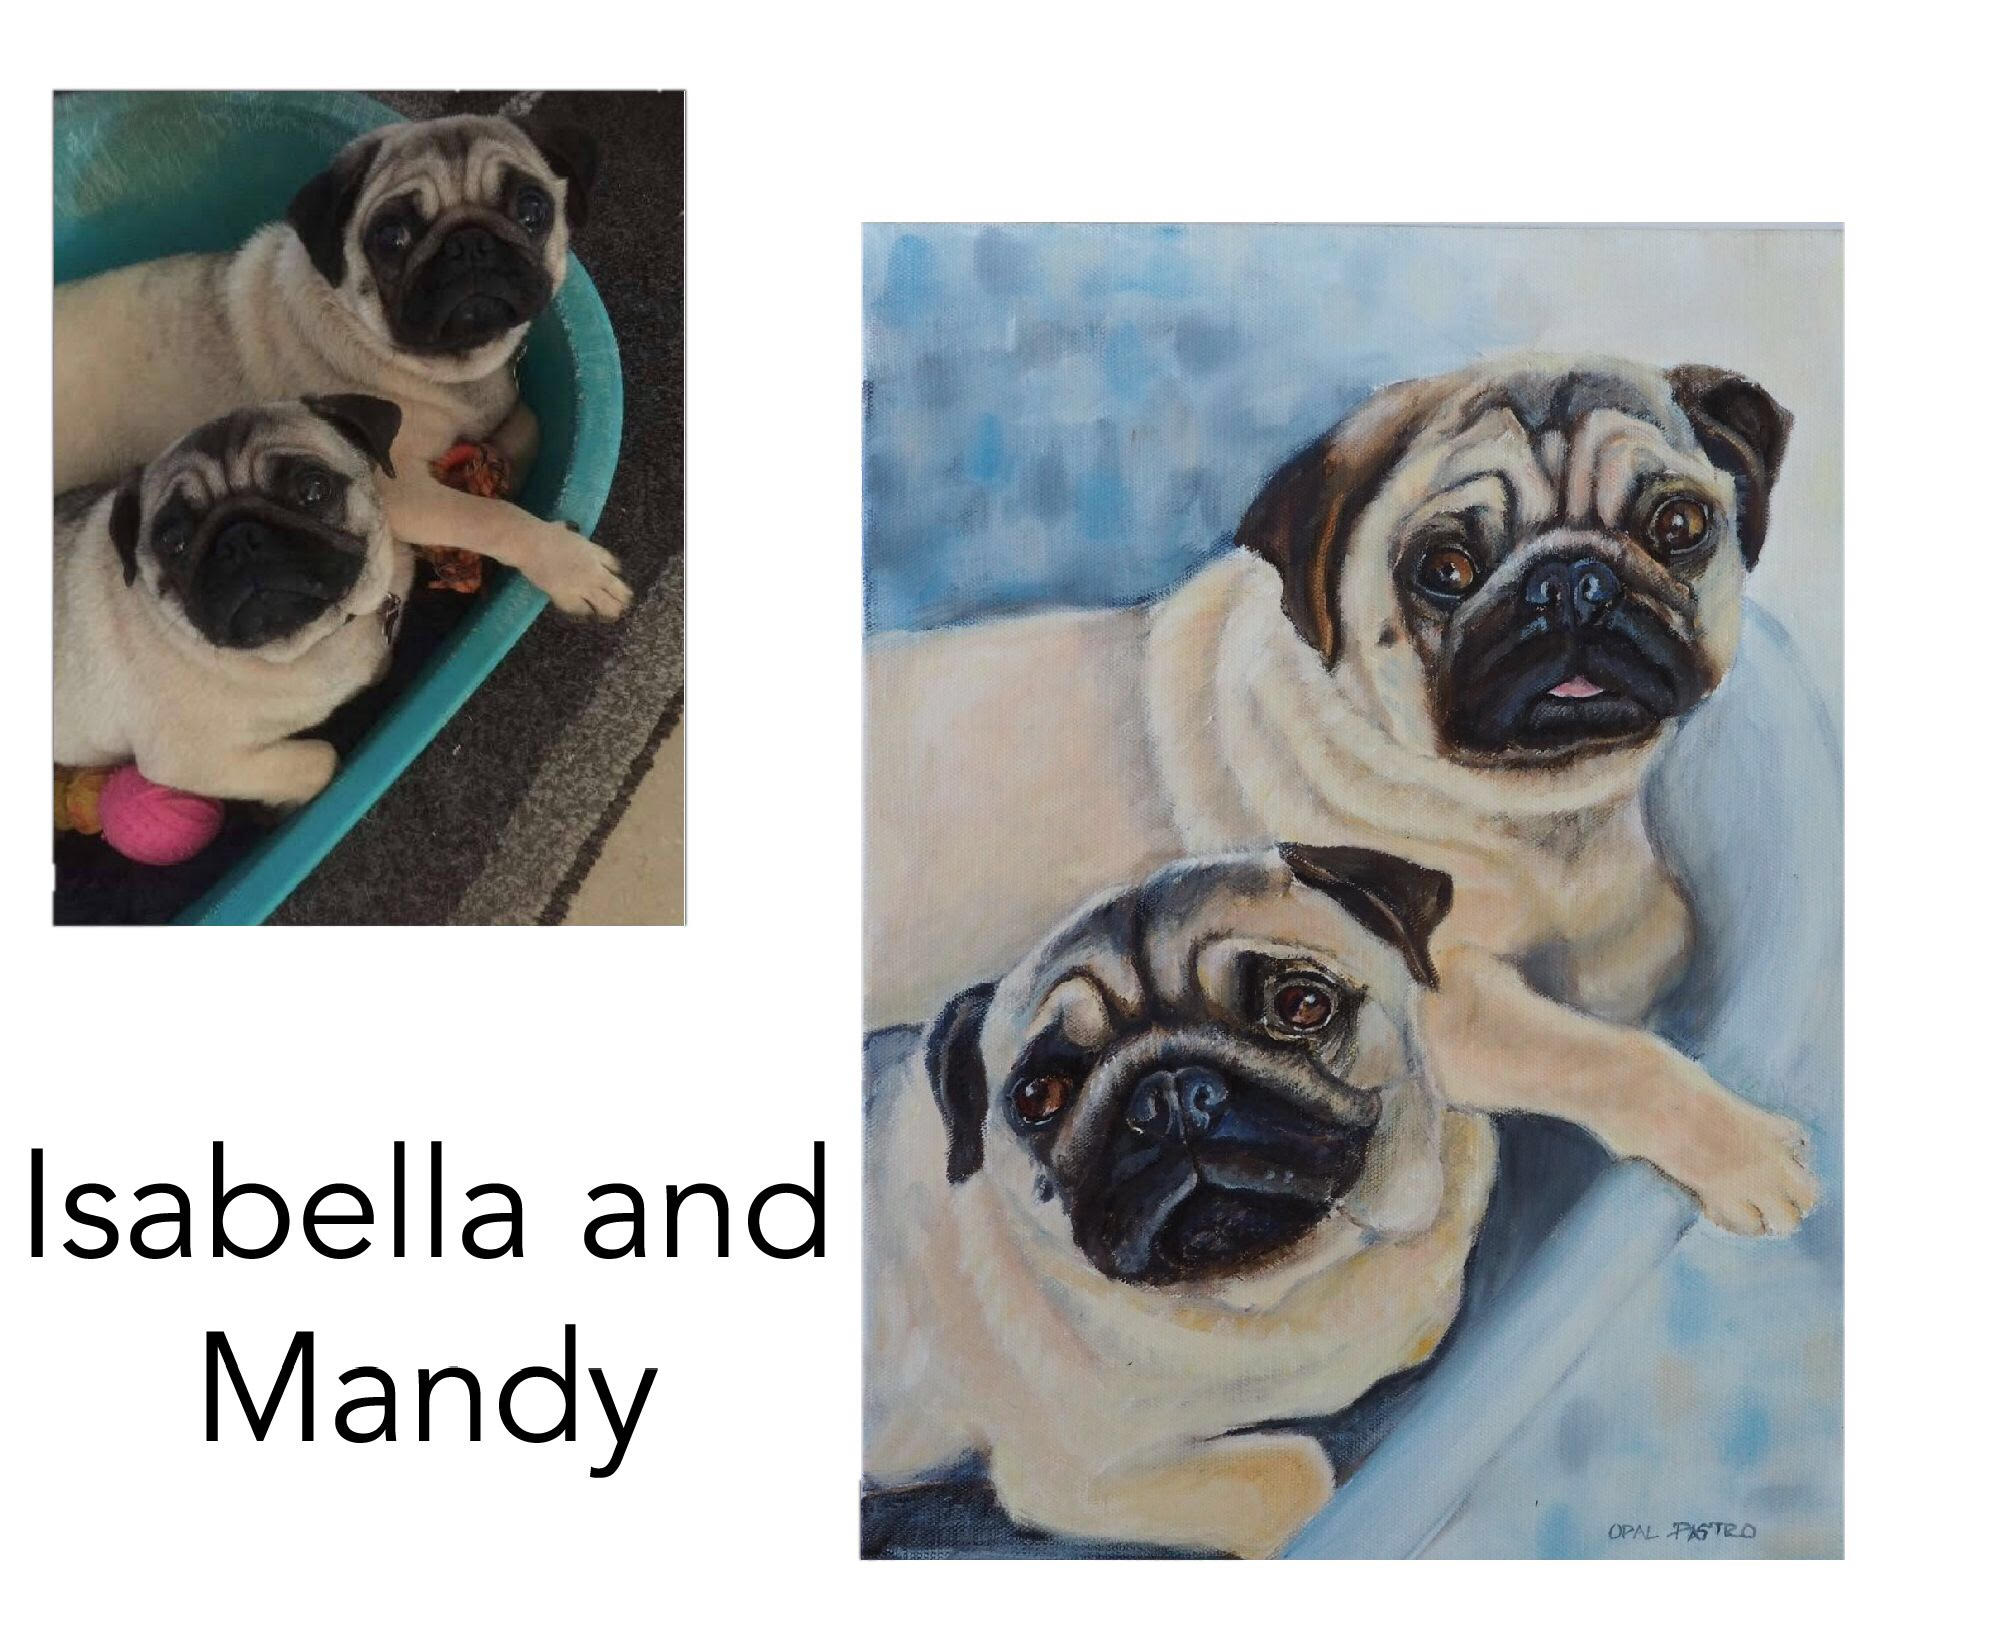 "Pug - Acrylic and oil on canvas 12"" x 16"" (30.48cm x 40.64cm)Private commission Griffith, NSW———————————Sisters Isabella and Mandy are cute as a button and cheeky as pugs can be. They were painted as a gift for their doting dad."